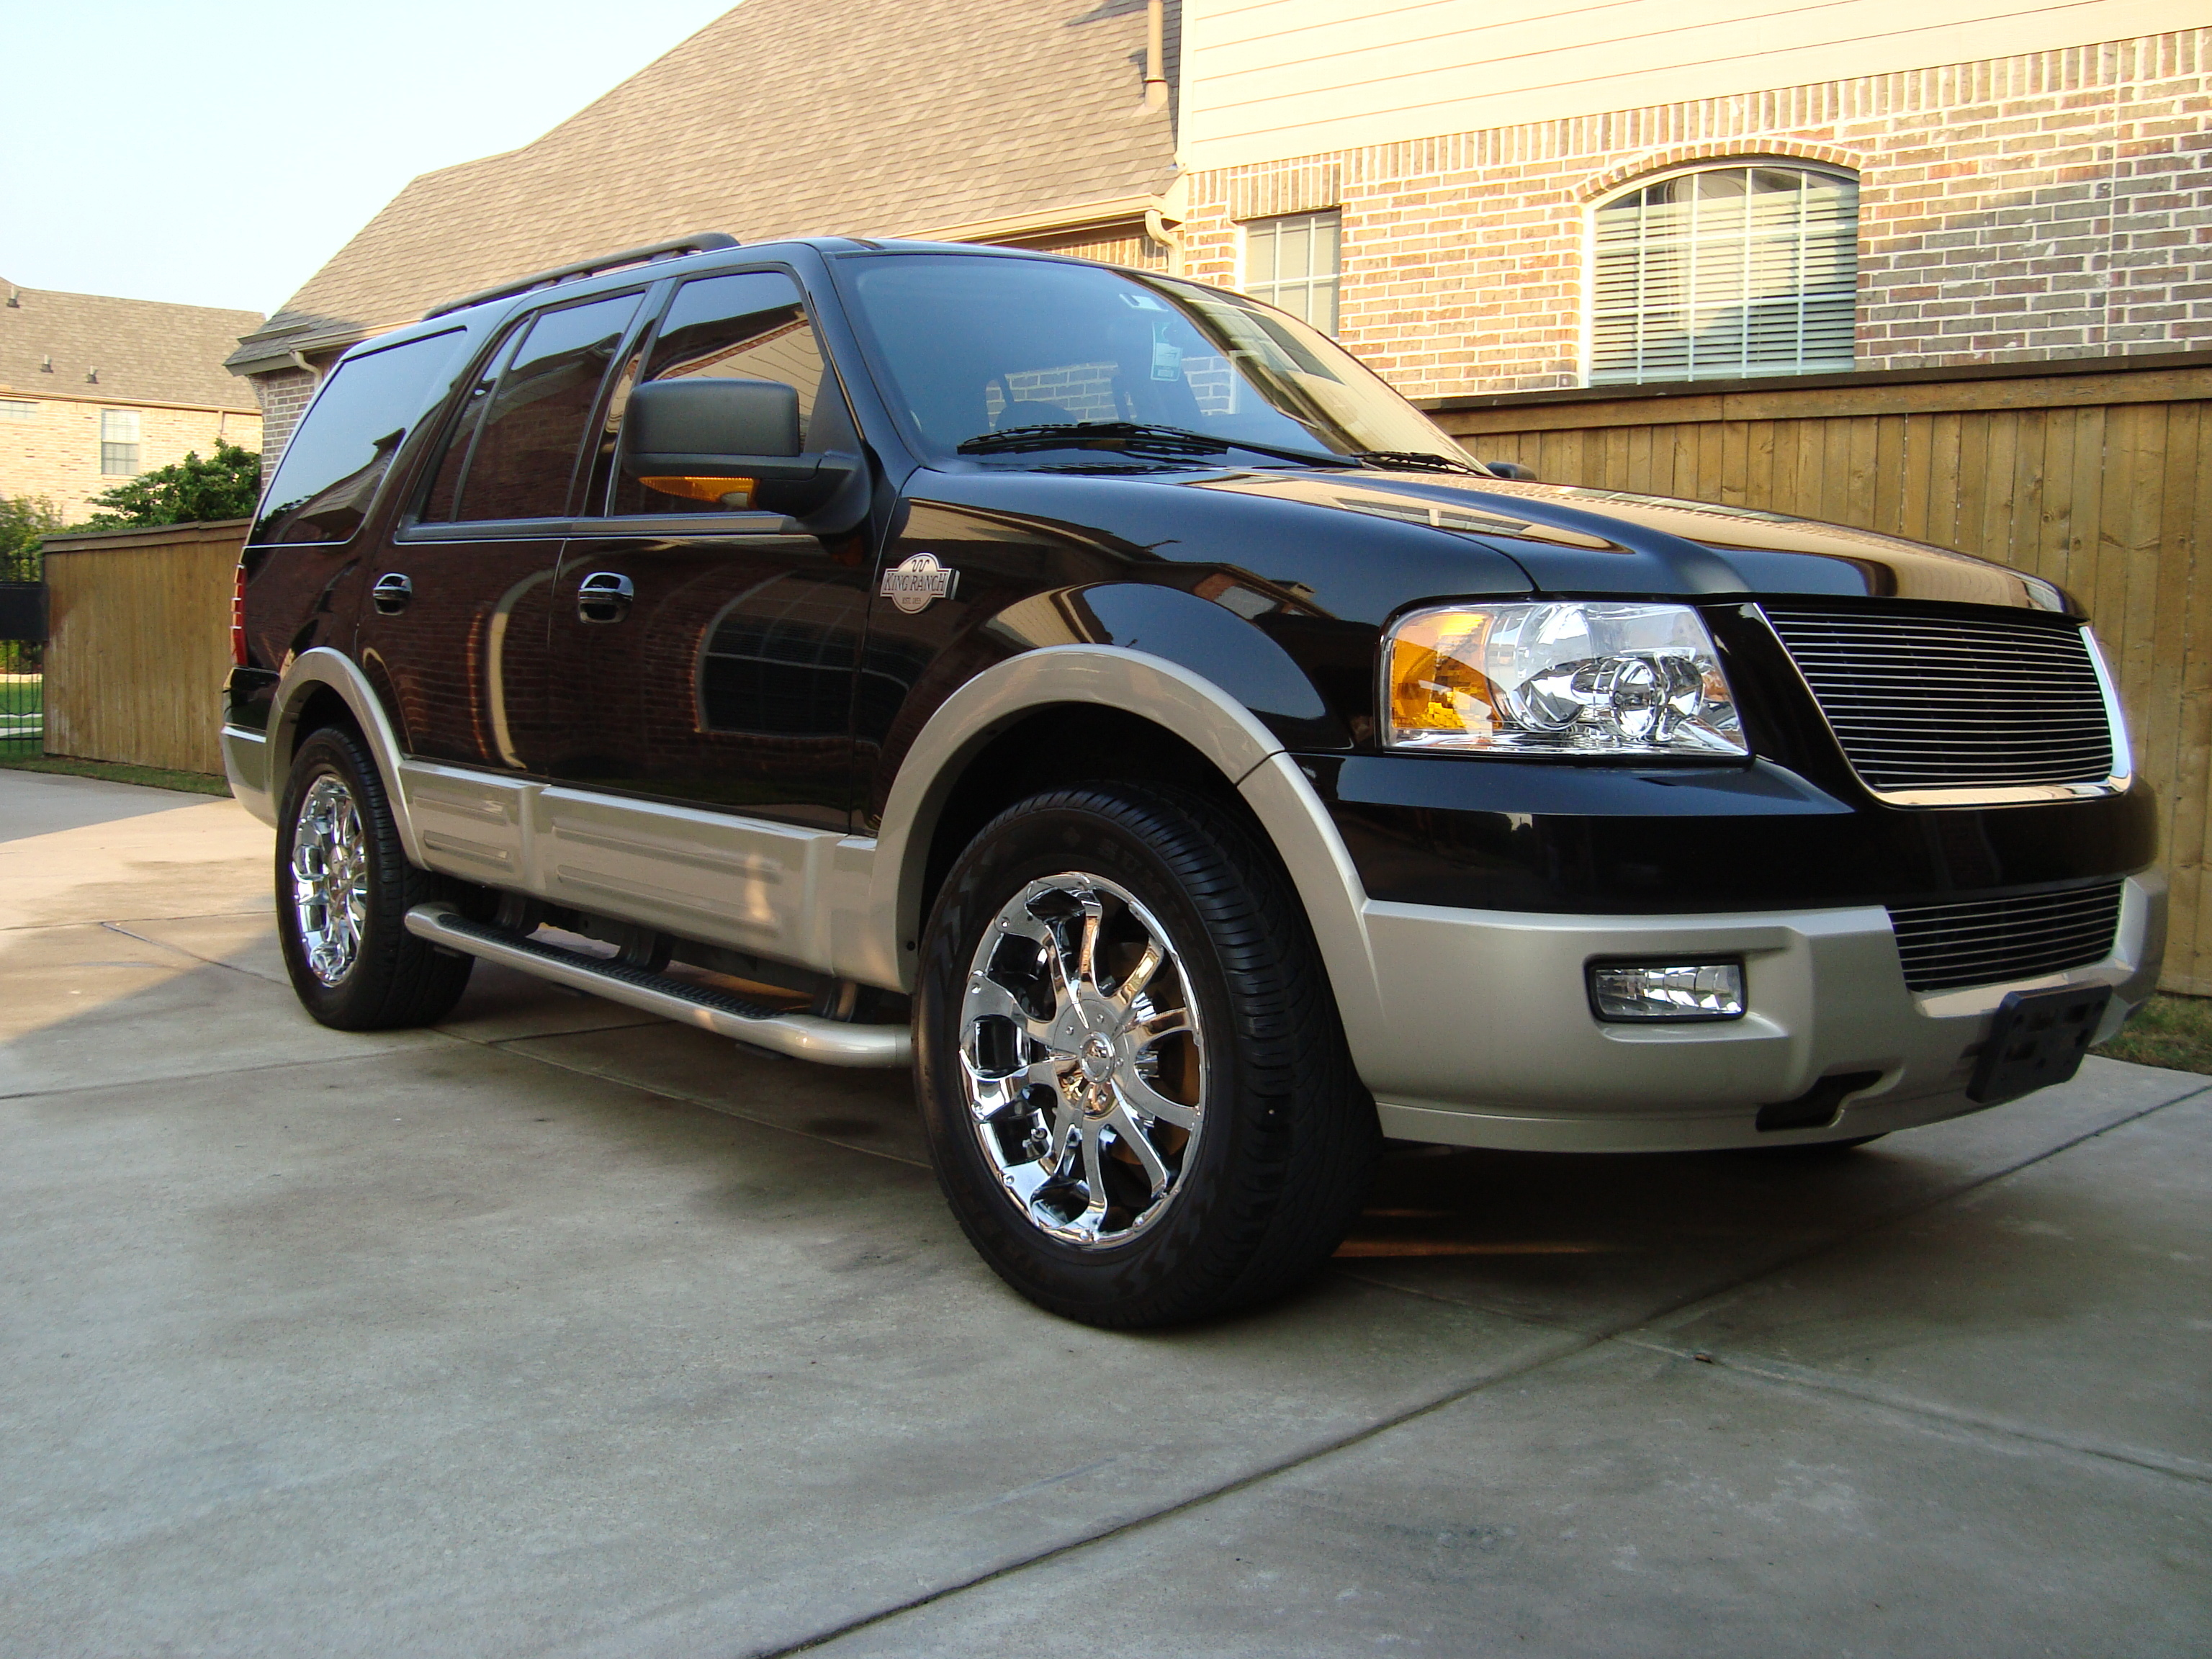 Jaysmith Ford Expedition Specs Photos Modification Info - 2006 expedition